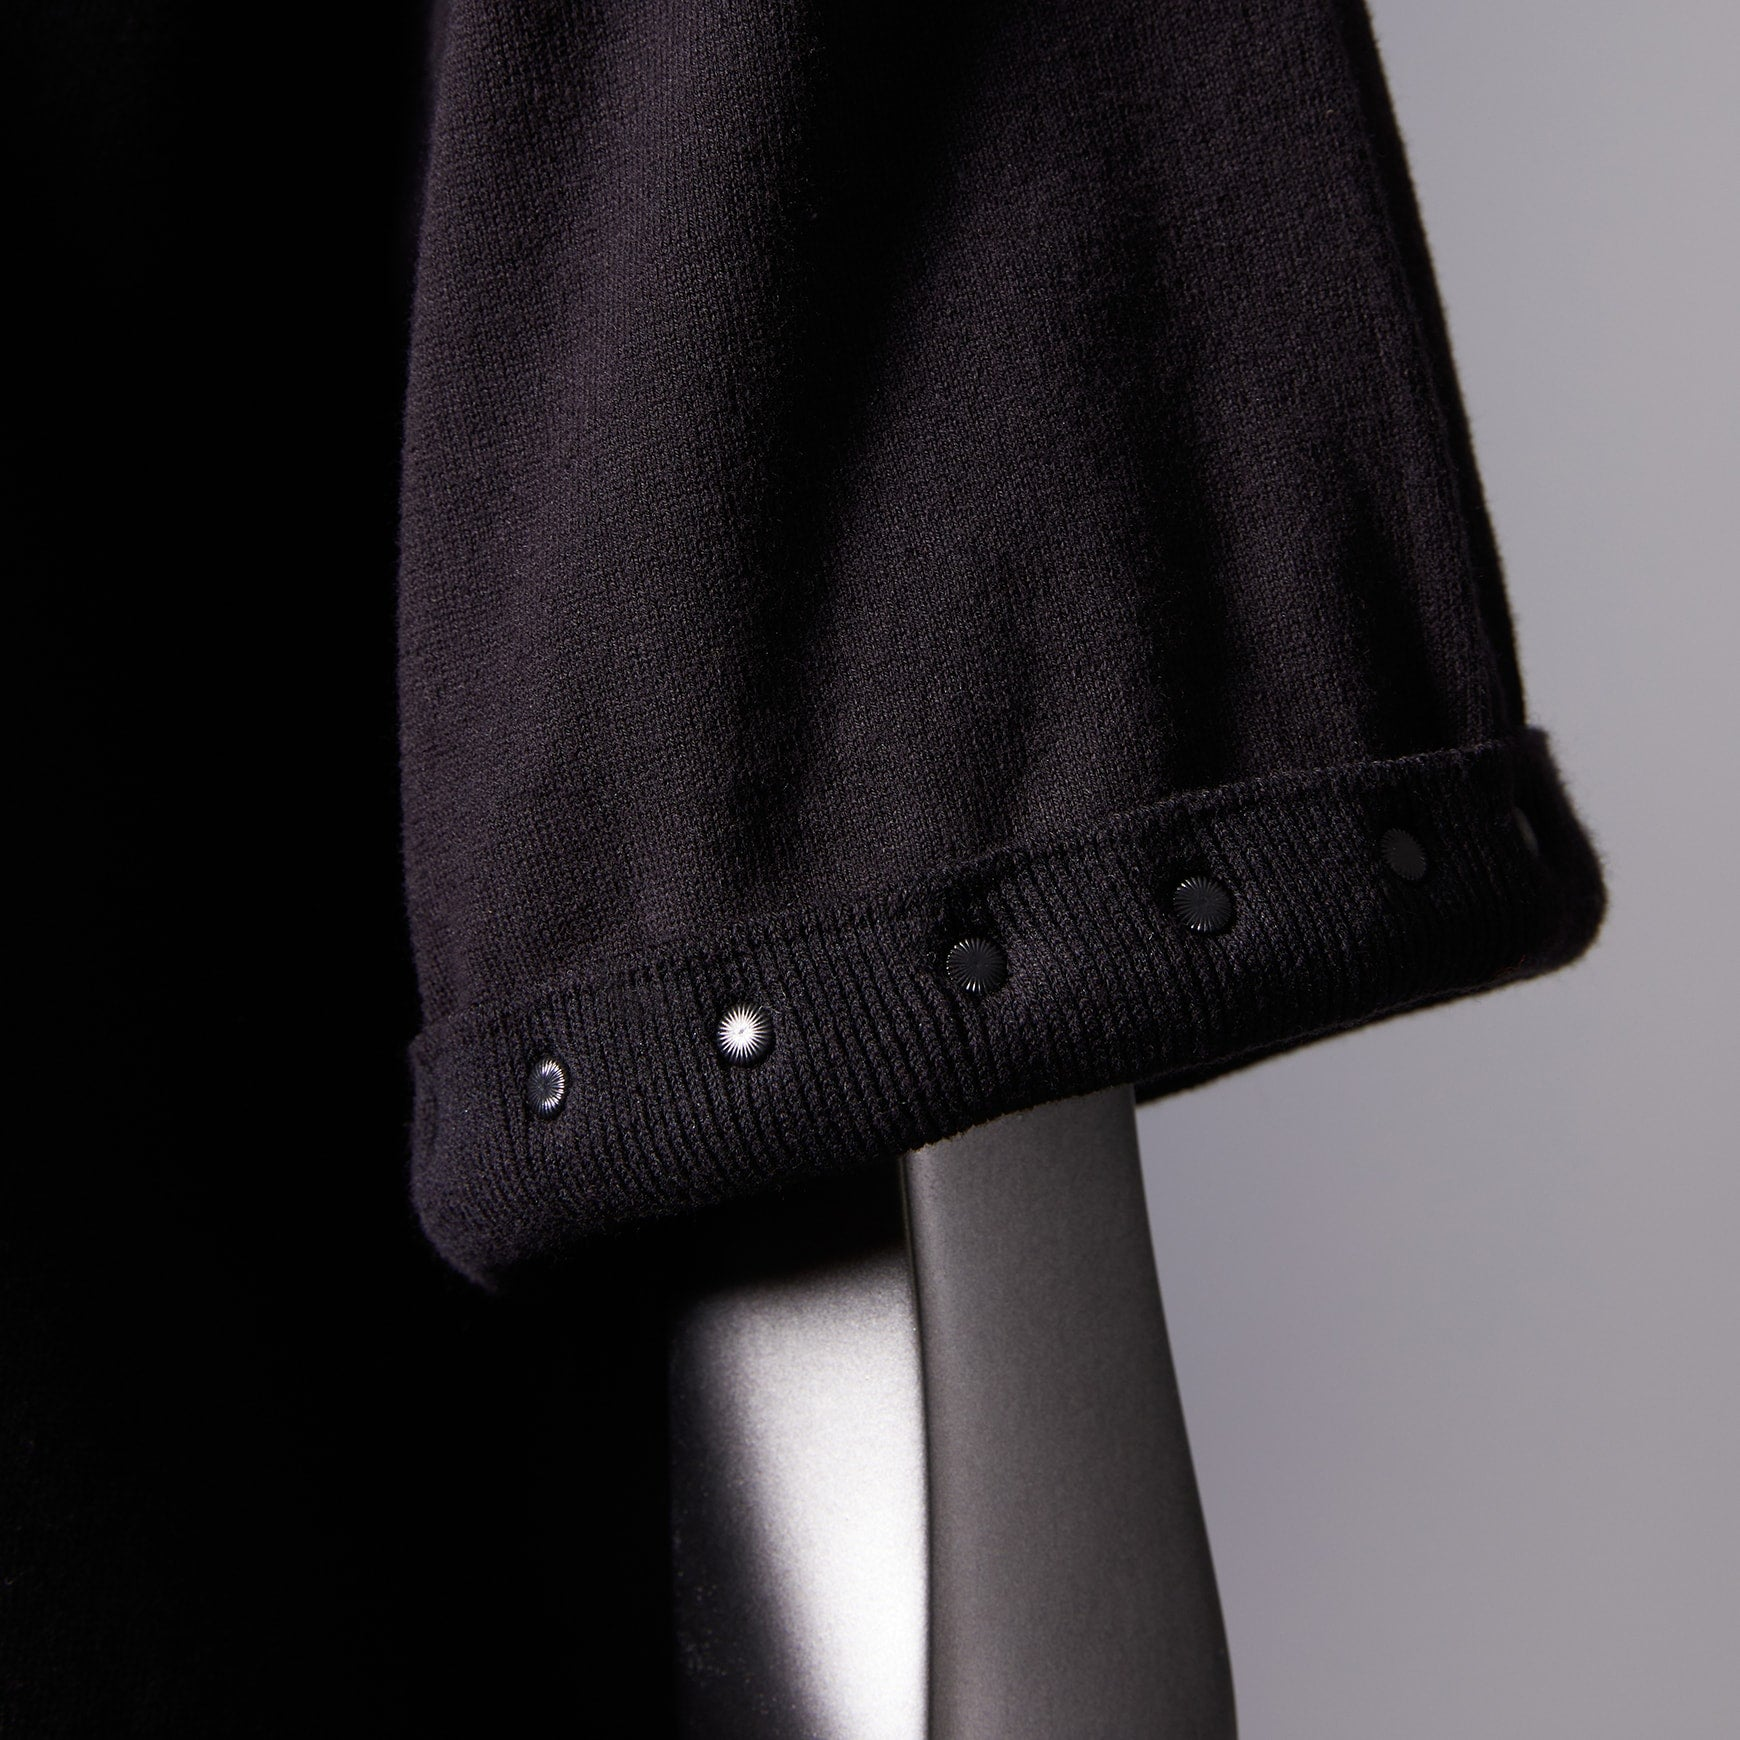 TYPE-1 Knit Half Sleeves Organic Cotton Sleeve Parts (Black)